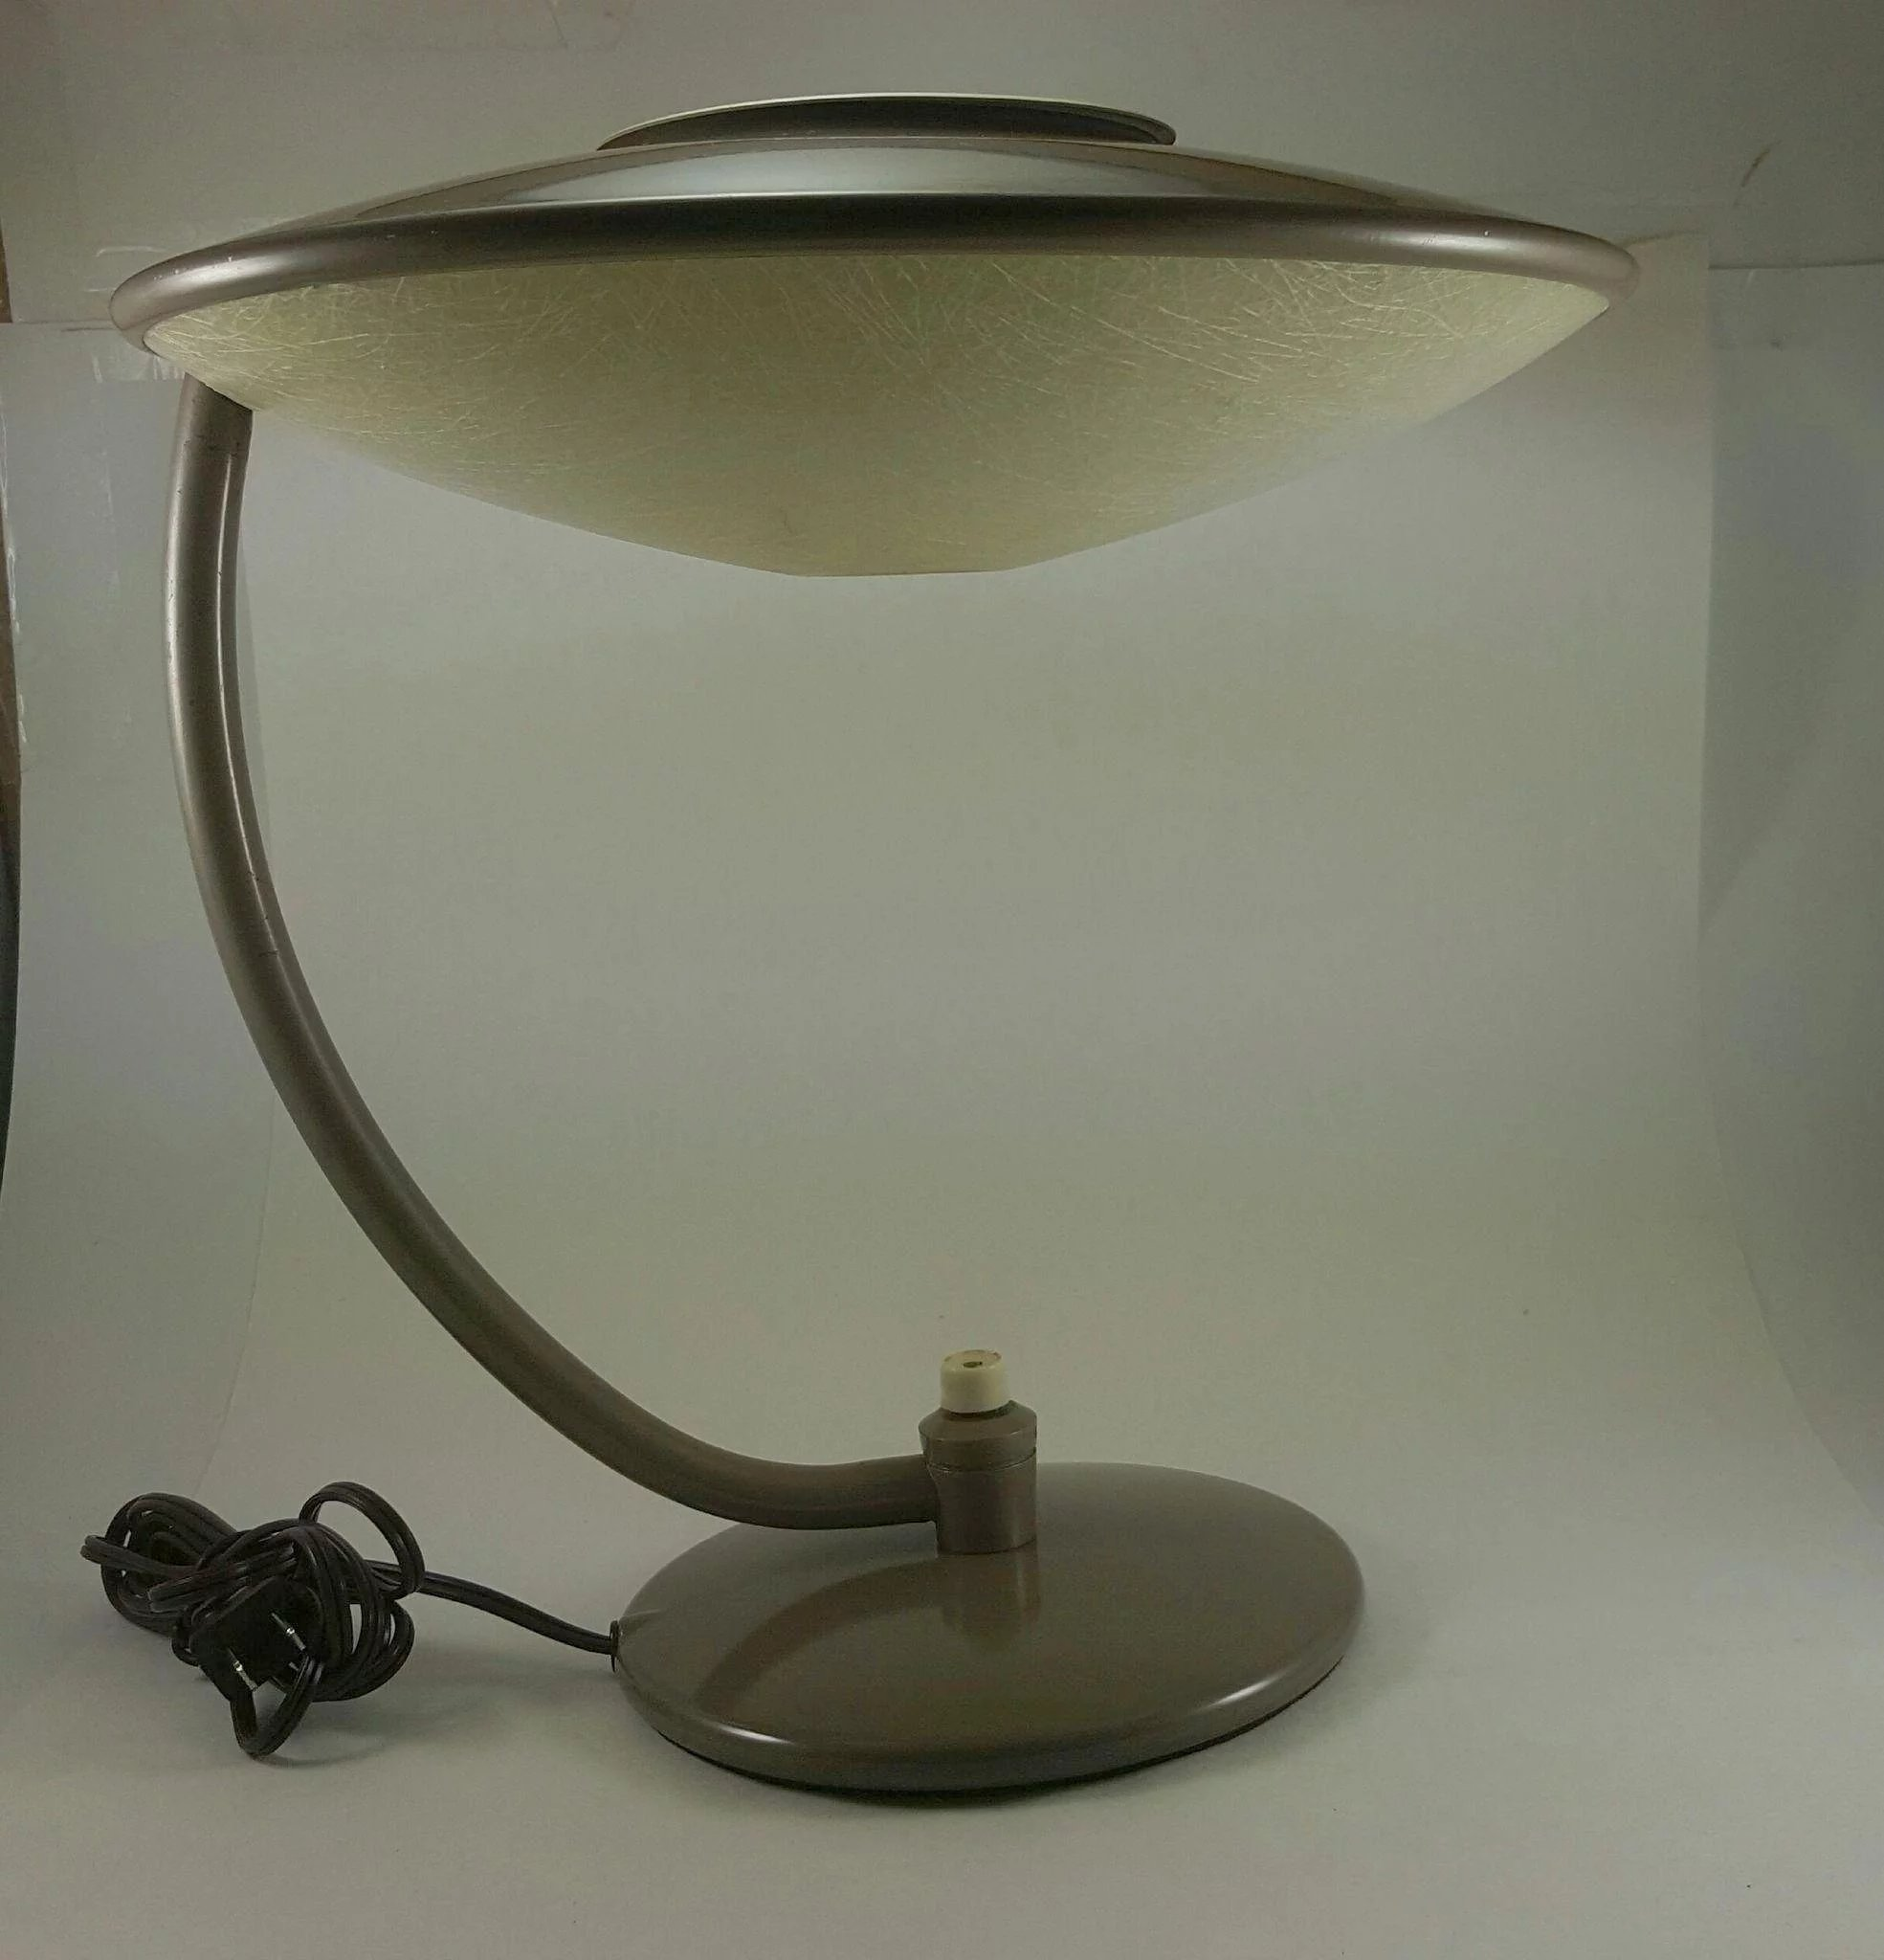 Dazor flying saucer spaceship table lamp model 2006 the moody dazor flying saucer spaceship table lamp model 2006 click to expand arubaitofo Gallery